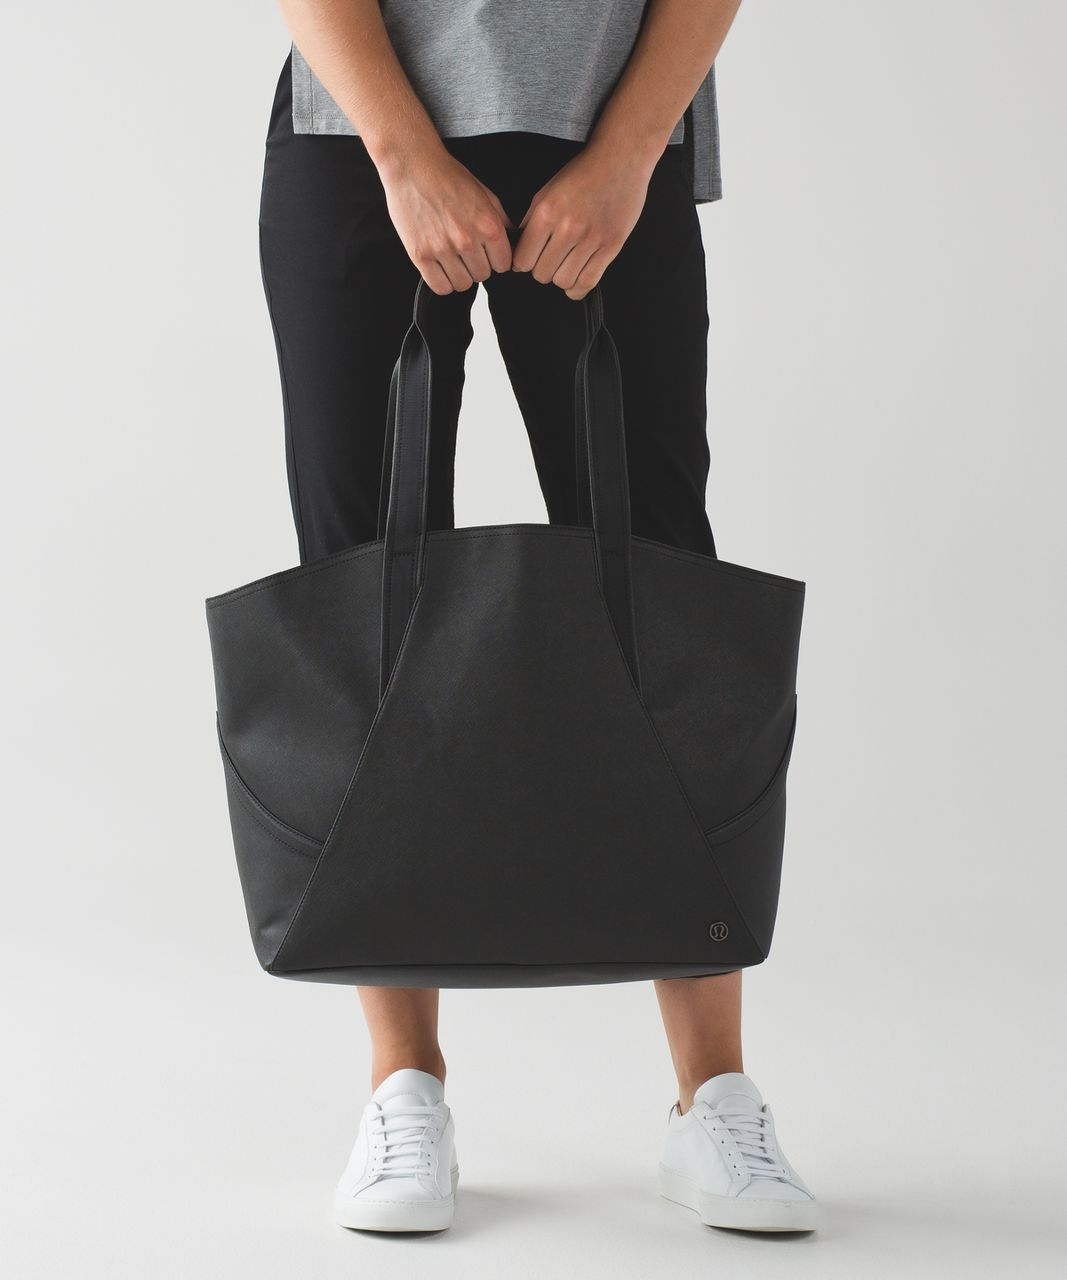 Lululemon all day tote black womens workout outfits